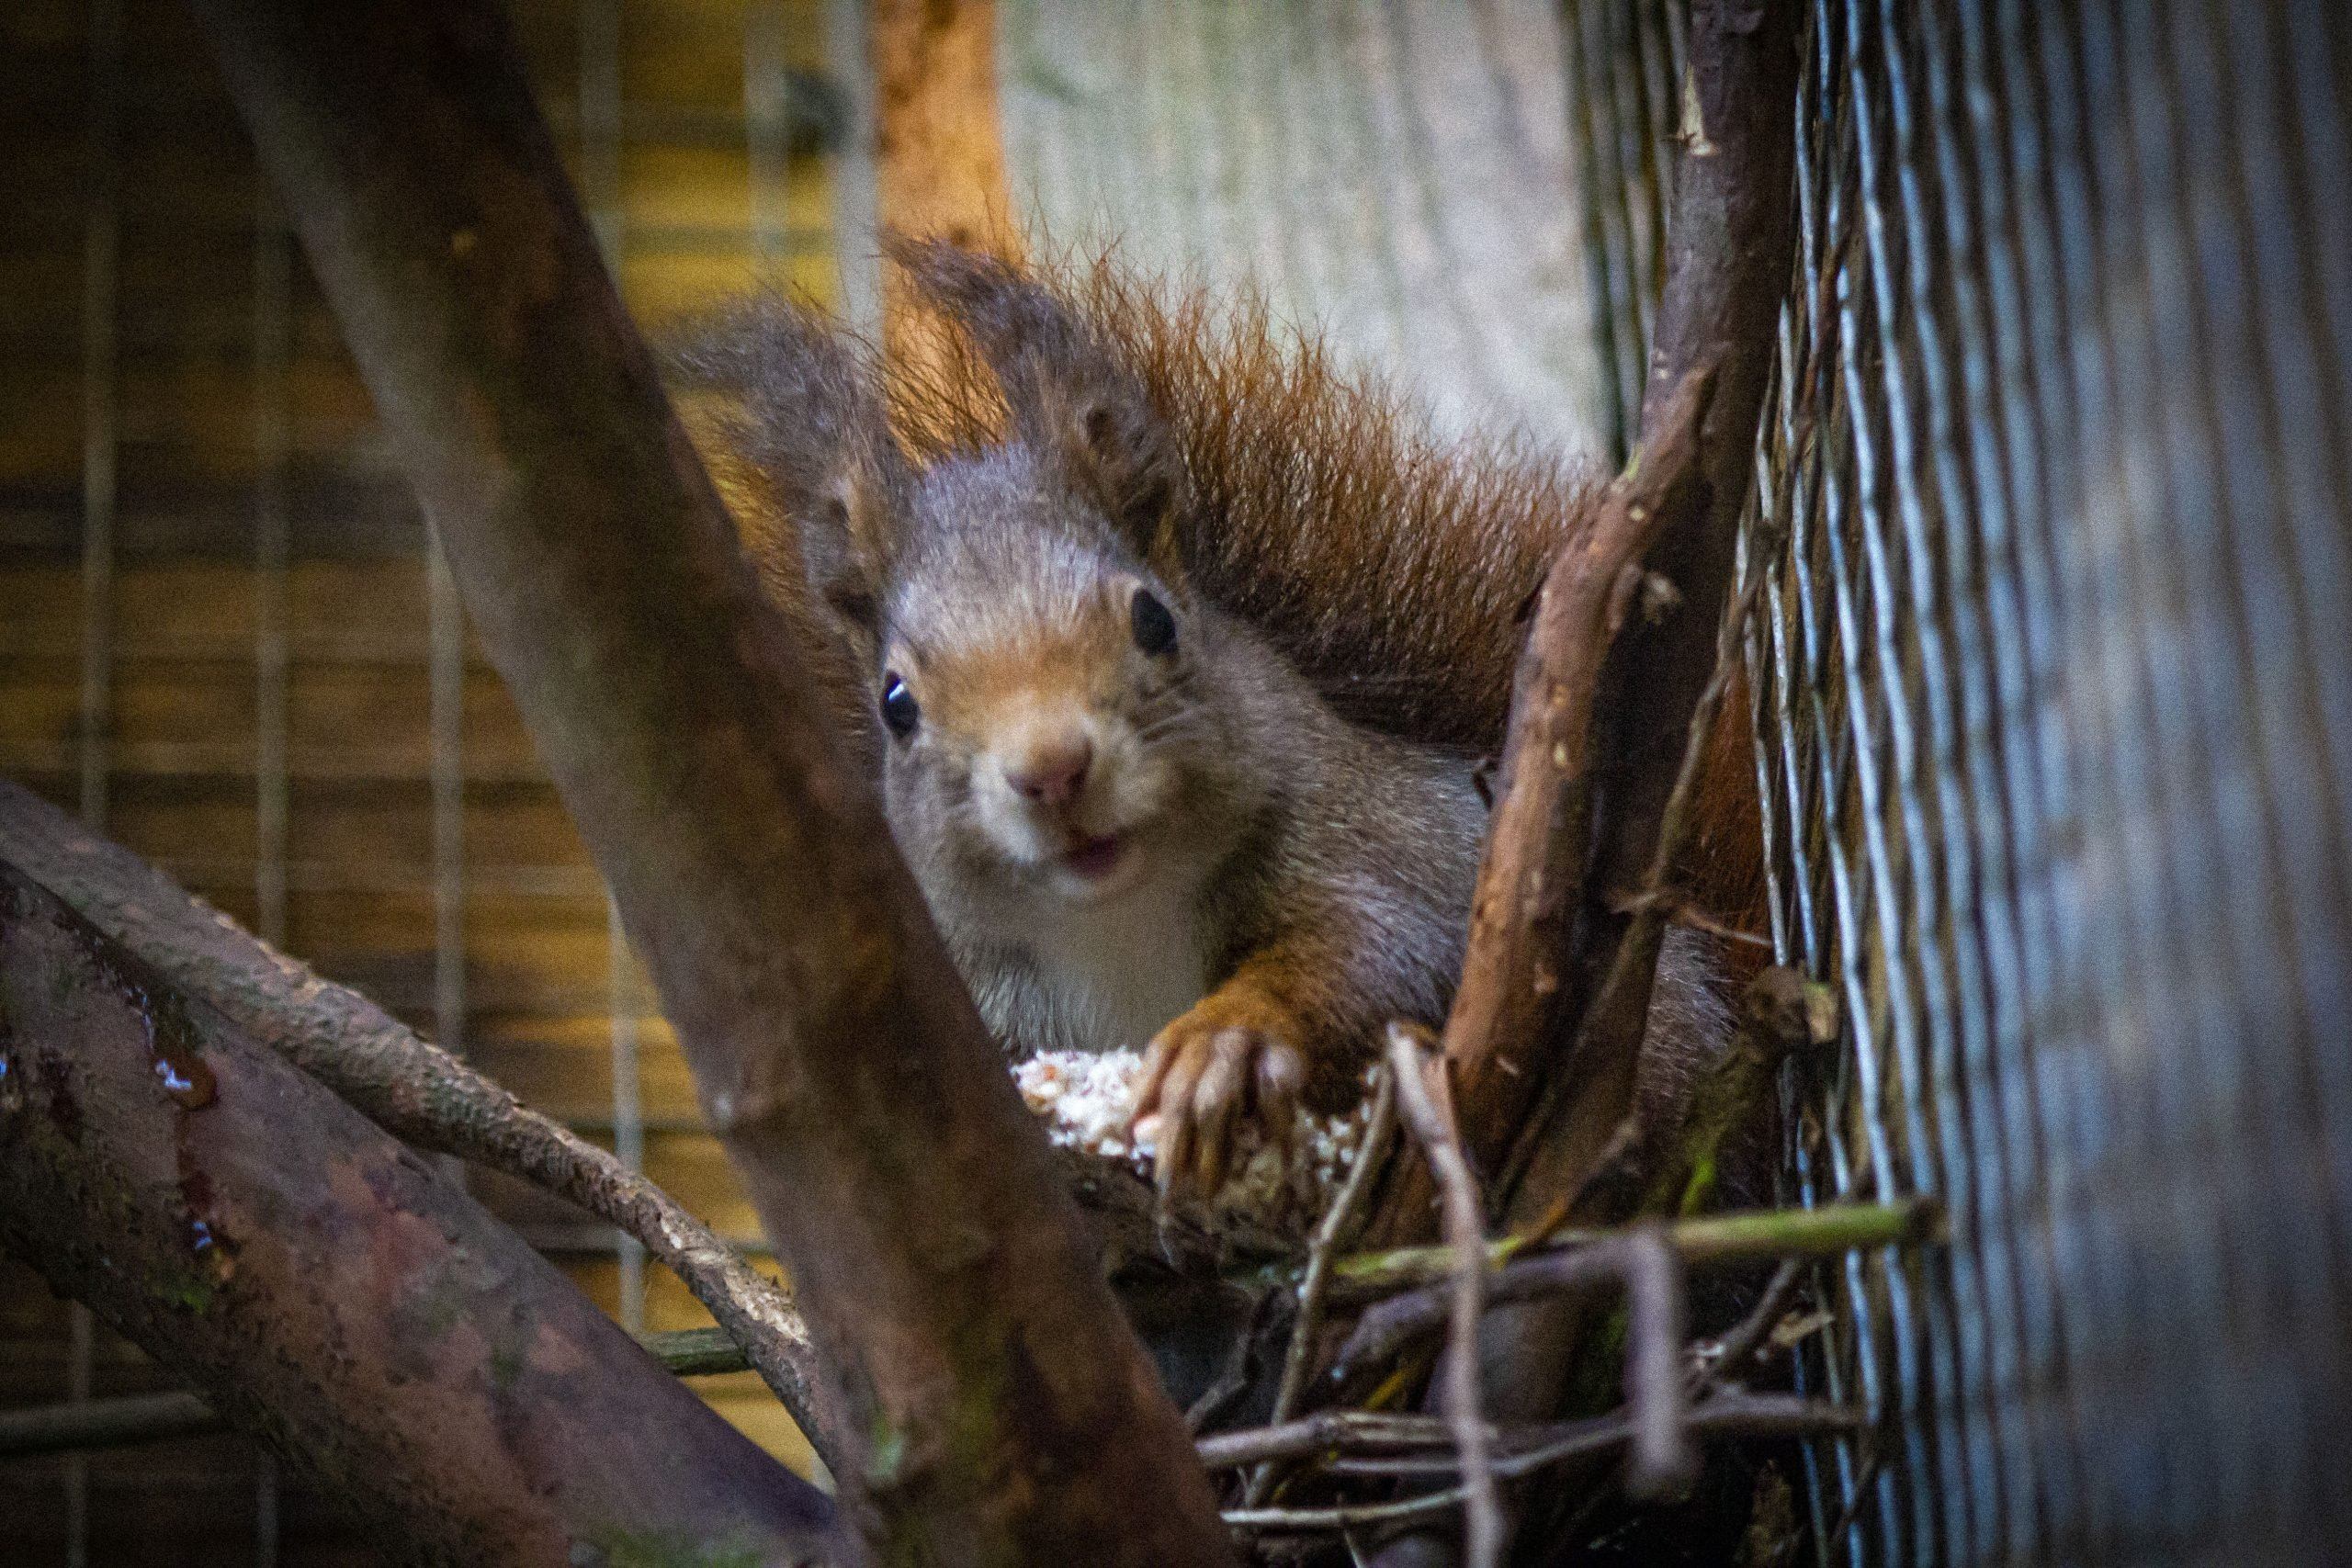 East Devon Radish the red squirrel was hailed as a 'real star' by staff at Wildwood Escot near Ottery St Mary. Picture: Wildwood Escot